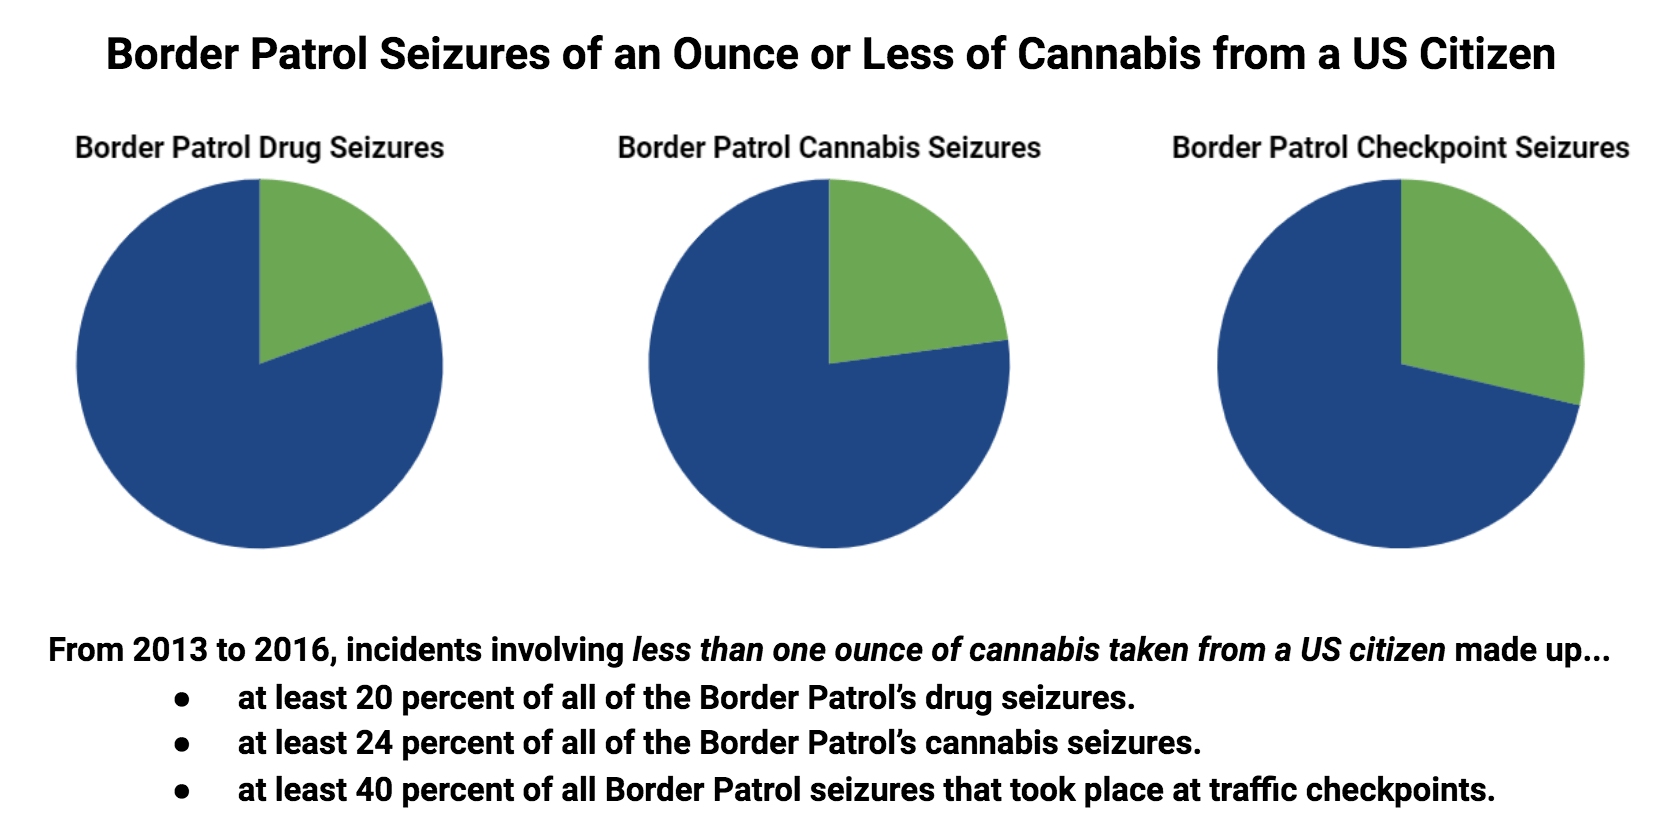 Who Gets Busted at the Border for Cannabis? Frequently, US